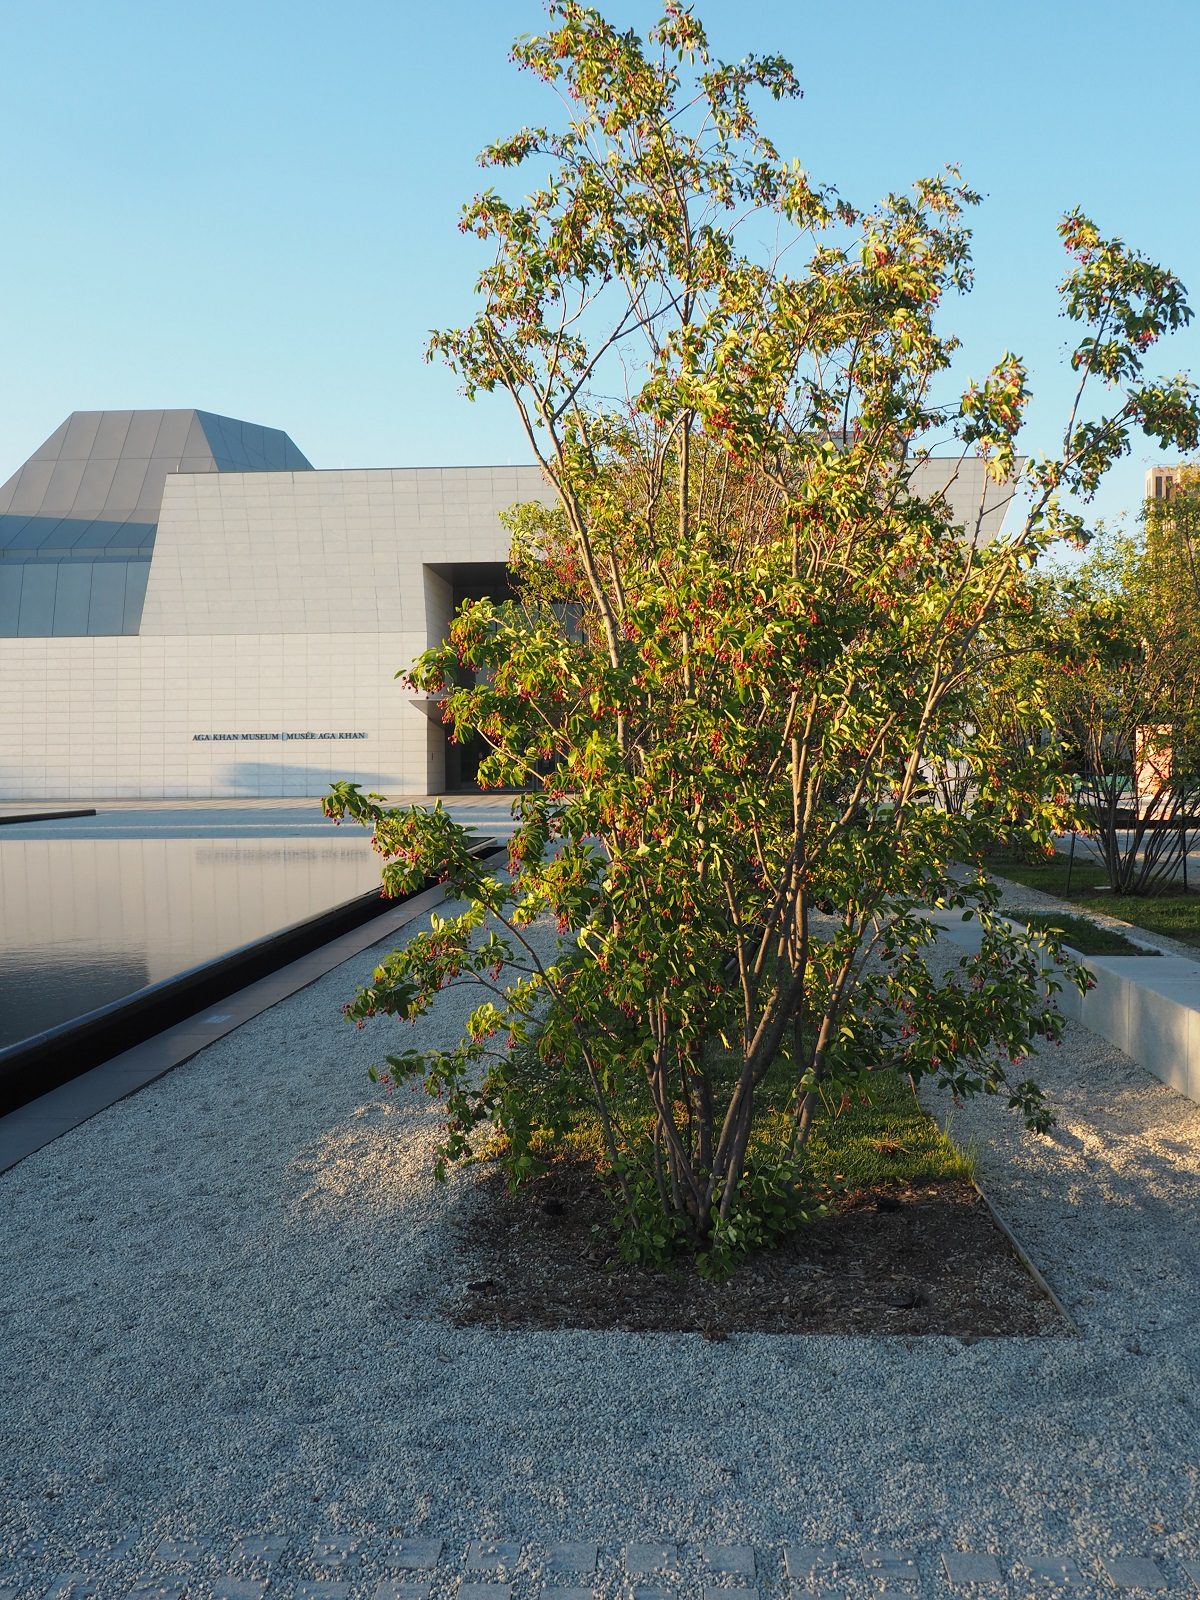 A photo of the entire service berry tree at Aga Khan Park bearing the largest concentration of the fruit Aga Khan Park Simerg Photos Photo of the Day